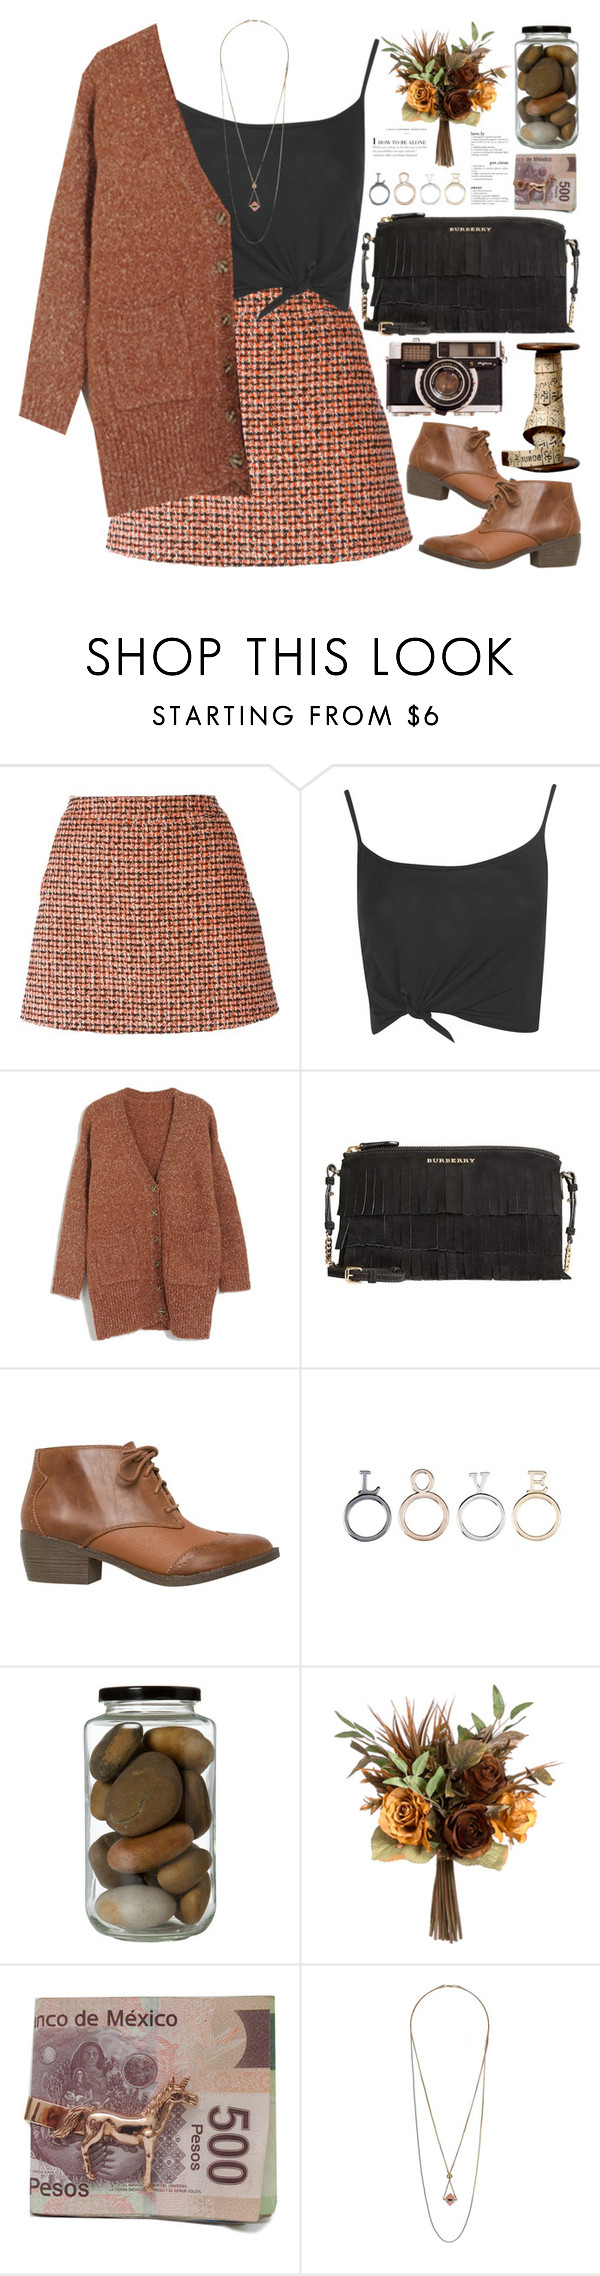 """""""2172. Old-fashioned Romance"""" by chocolatepumma ❤ liked on Polyvore featuring dVb Victoria Beckham, Boohoo, Burberry, BC Footwear, Topshop, women's clothing, women, female, woman and misses"""